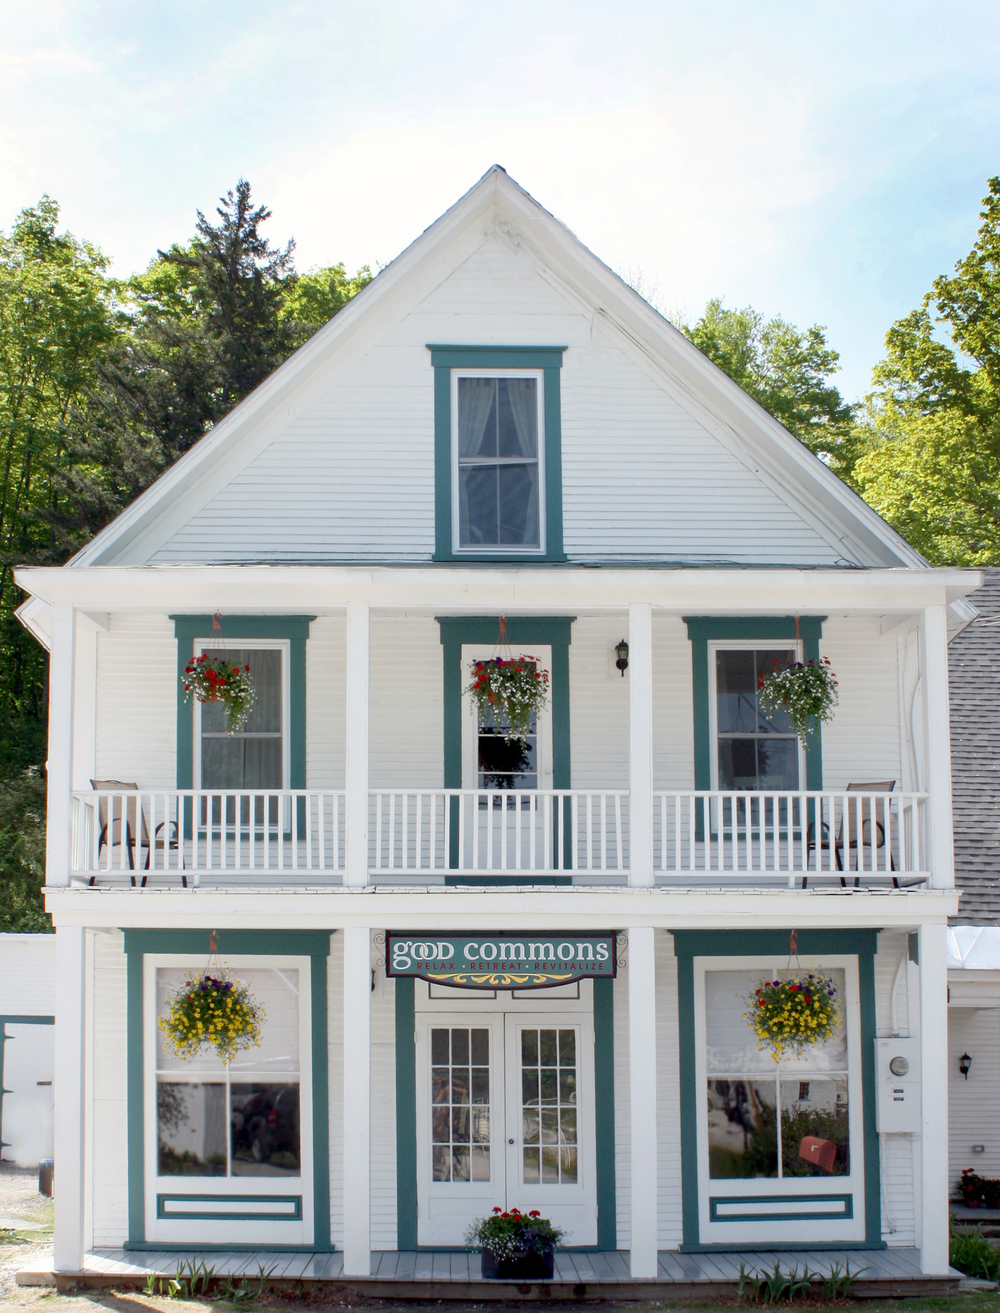 Good-Commons-Retreats-and-Vacations-Plymouth-Vermont.jpg